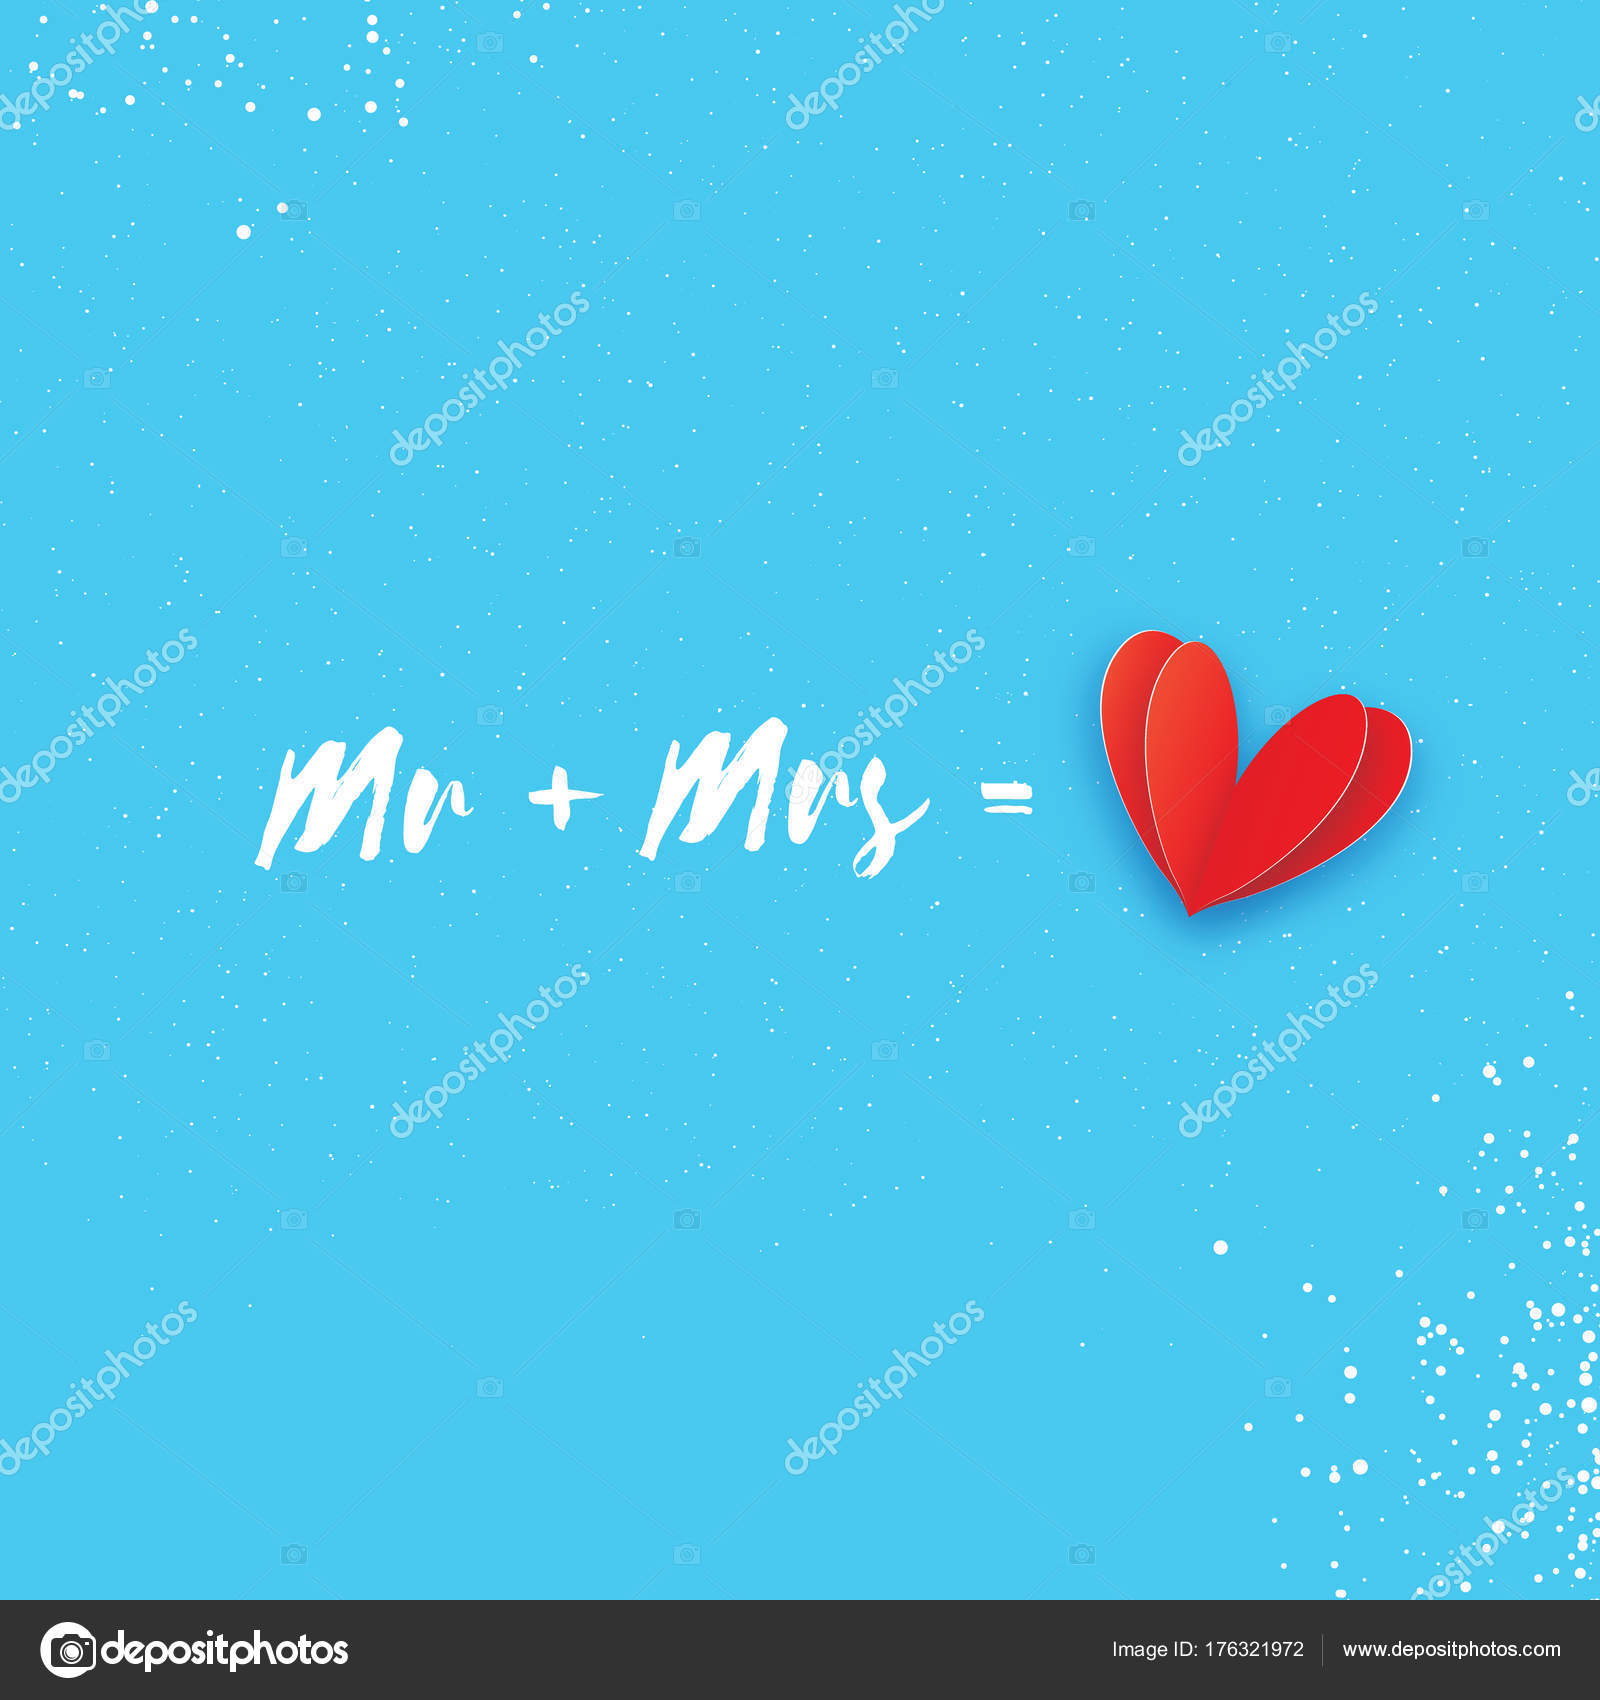 Mr And Mrs Words Mister Plus Missis Equal Love Paper Cut Red Heart